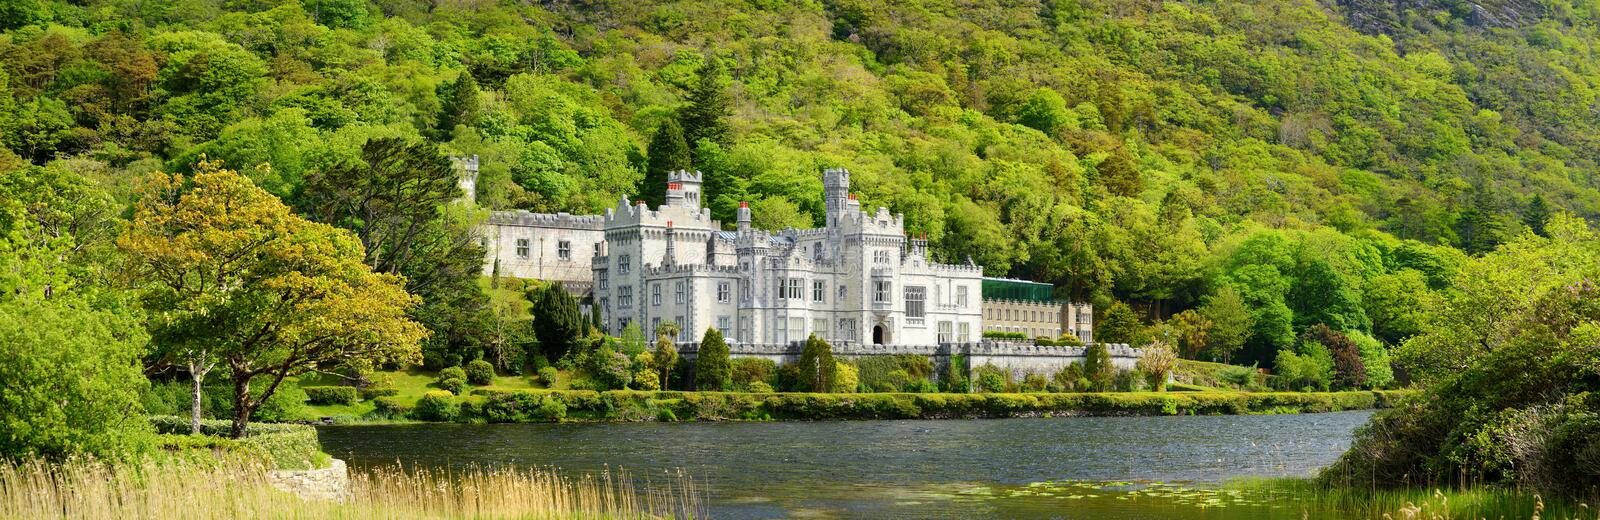 Kylemore Abbey, a Benedictine monastery founded on the grounds of Kylemore Castle, in Connemara, Ireland royalty free stock images